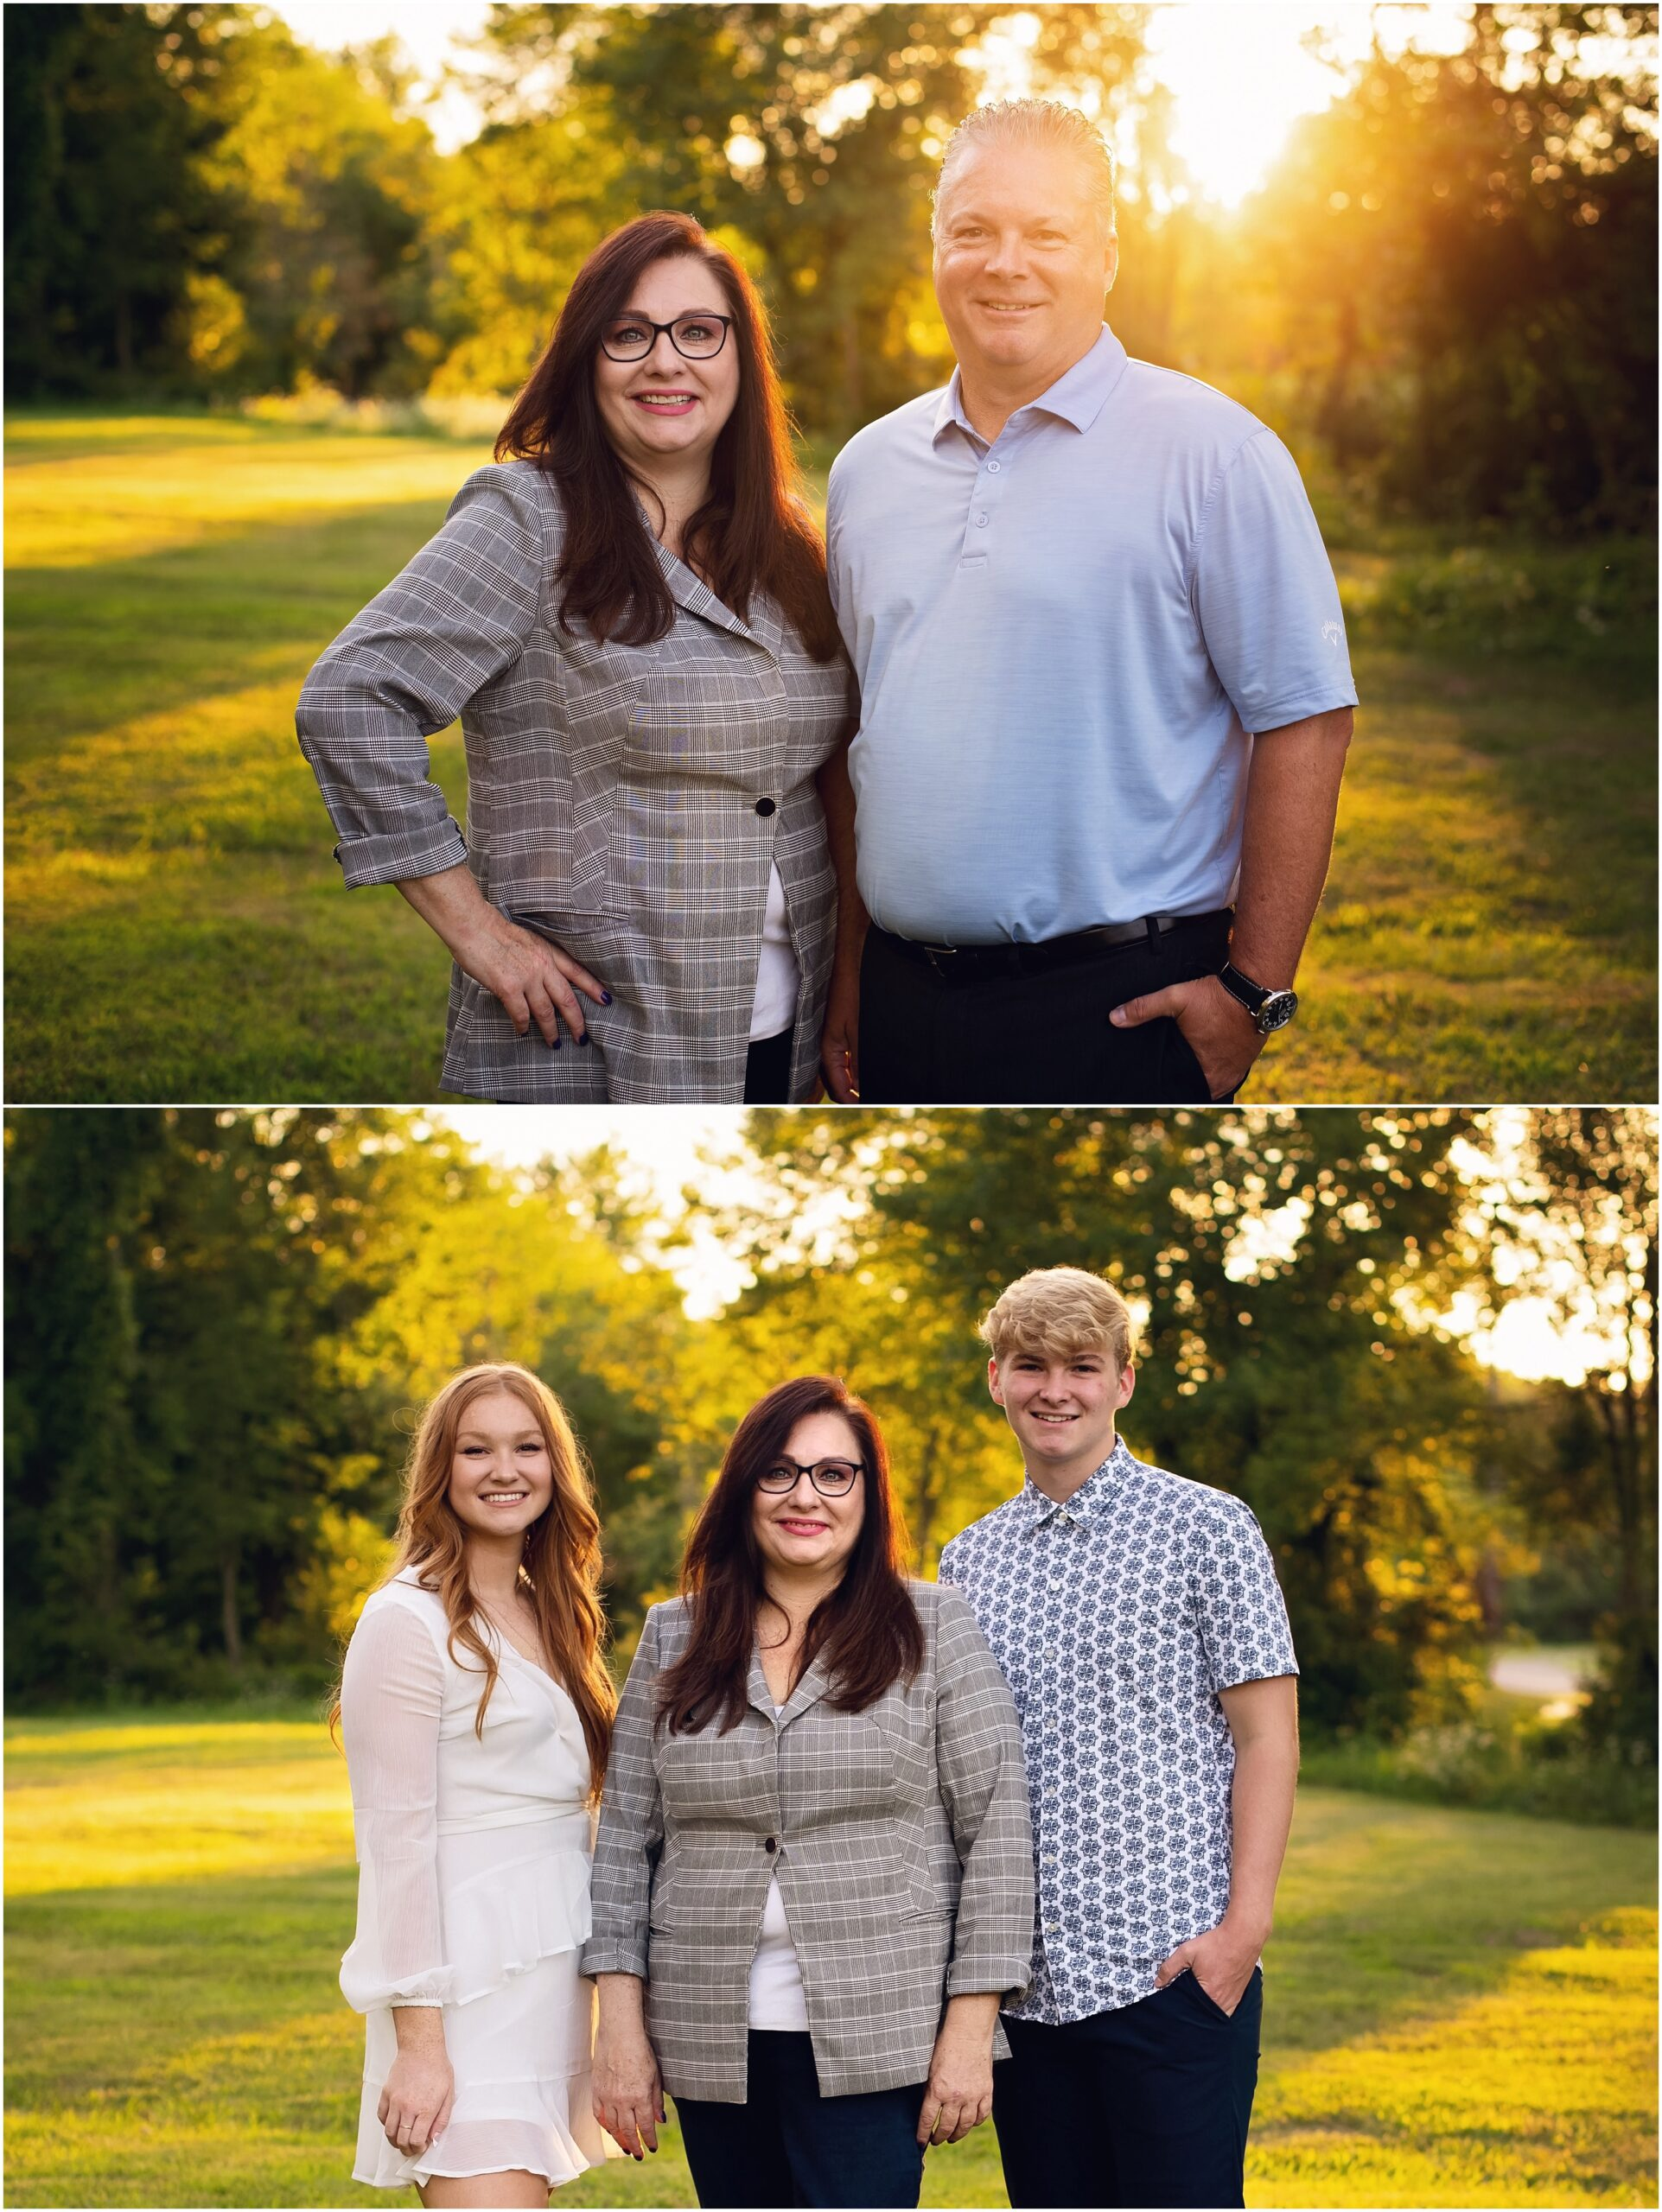 adult siblings, aunt with niece and nephew